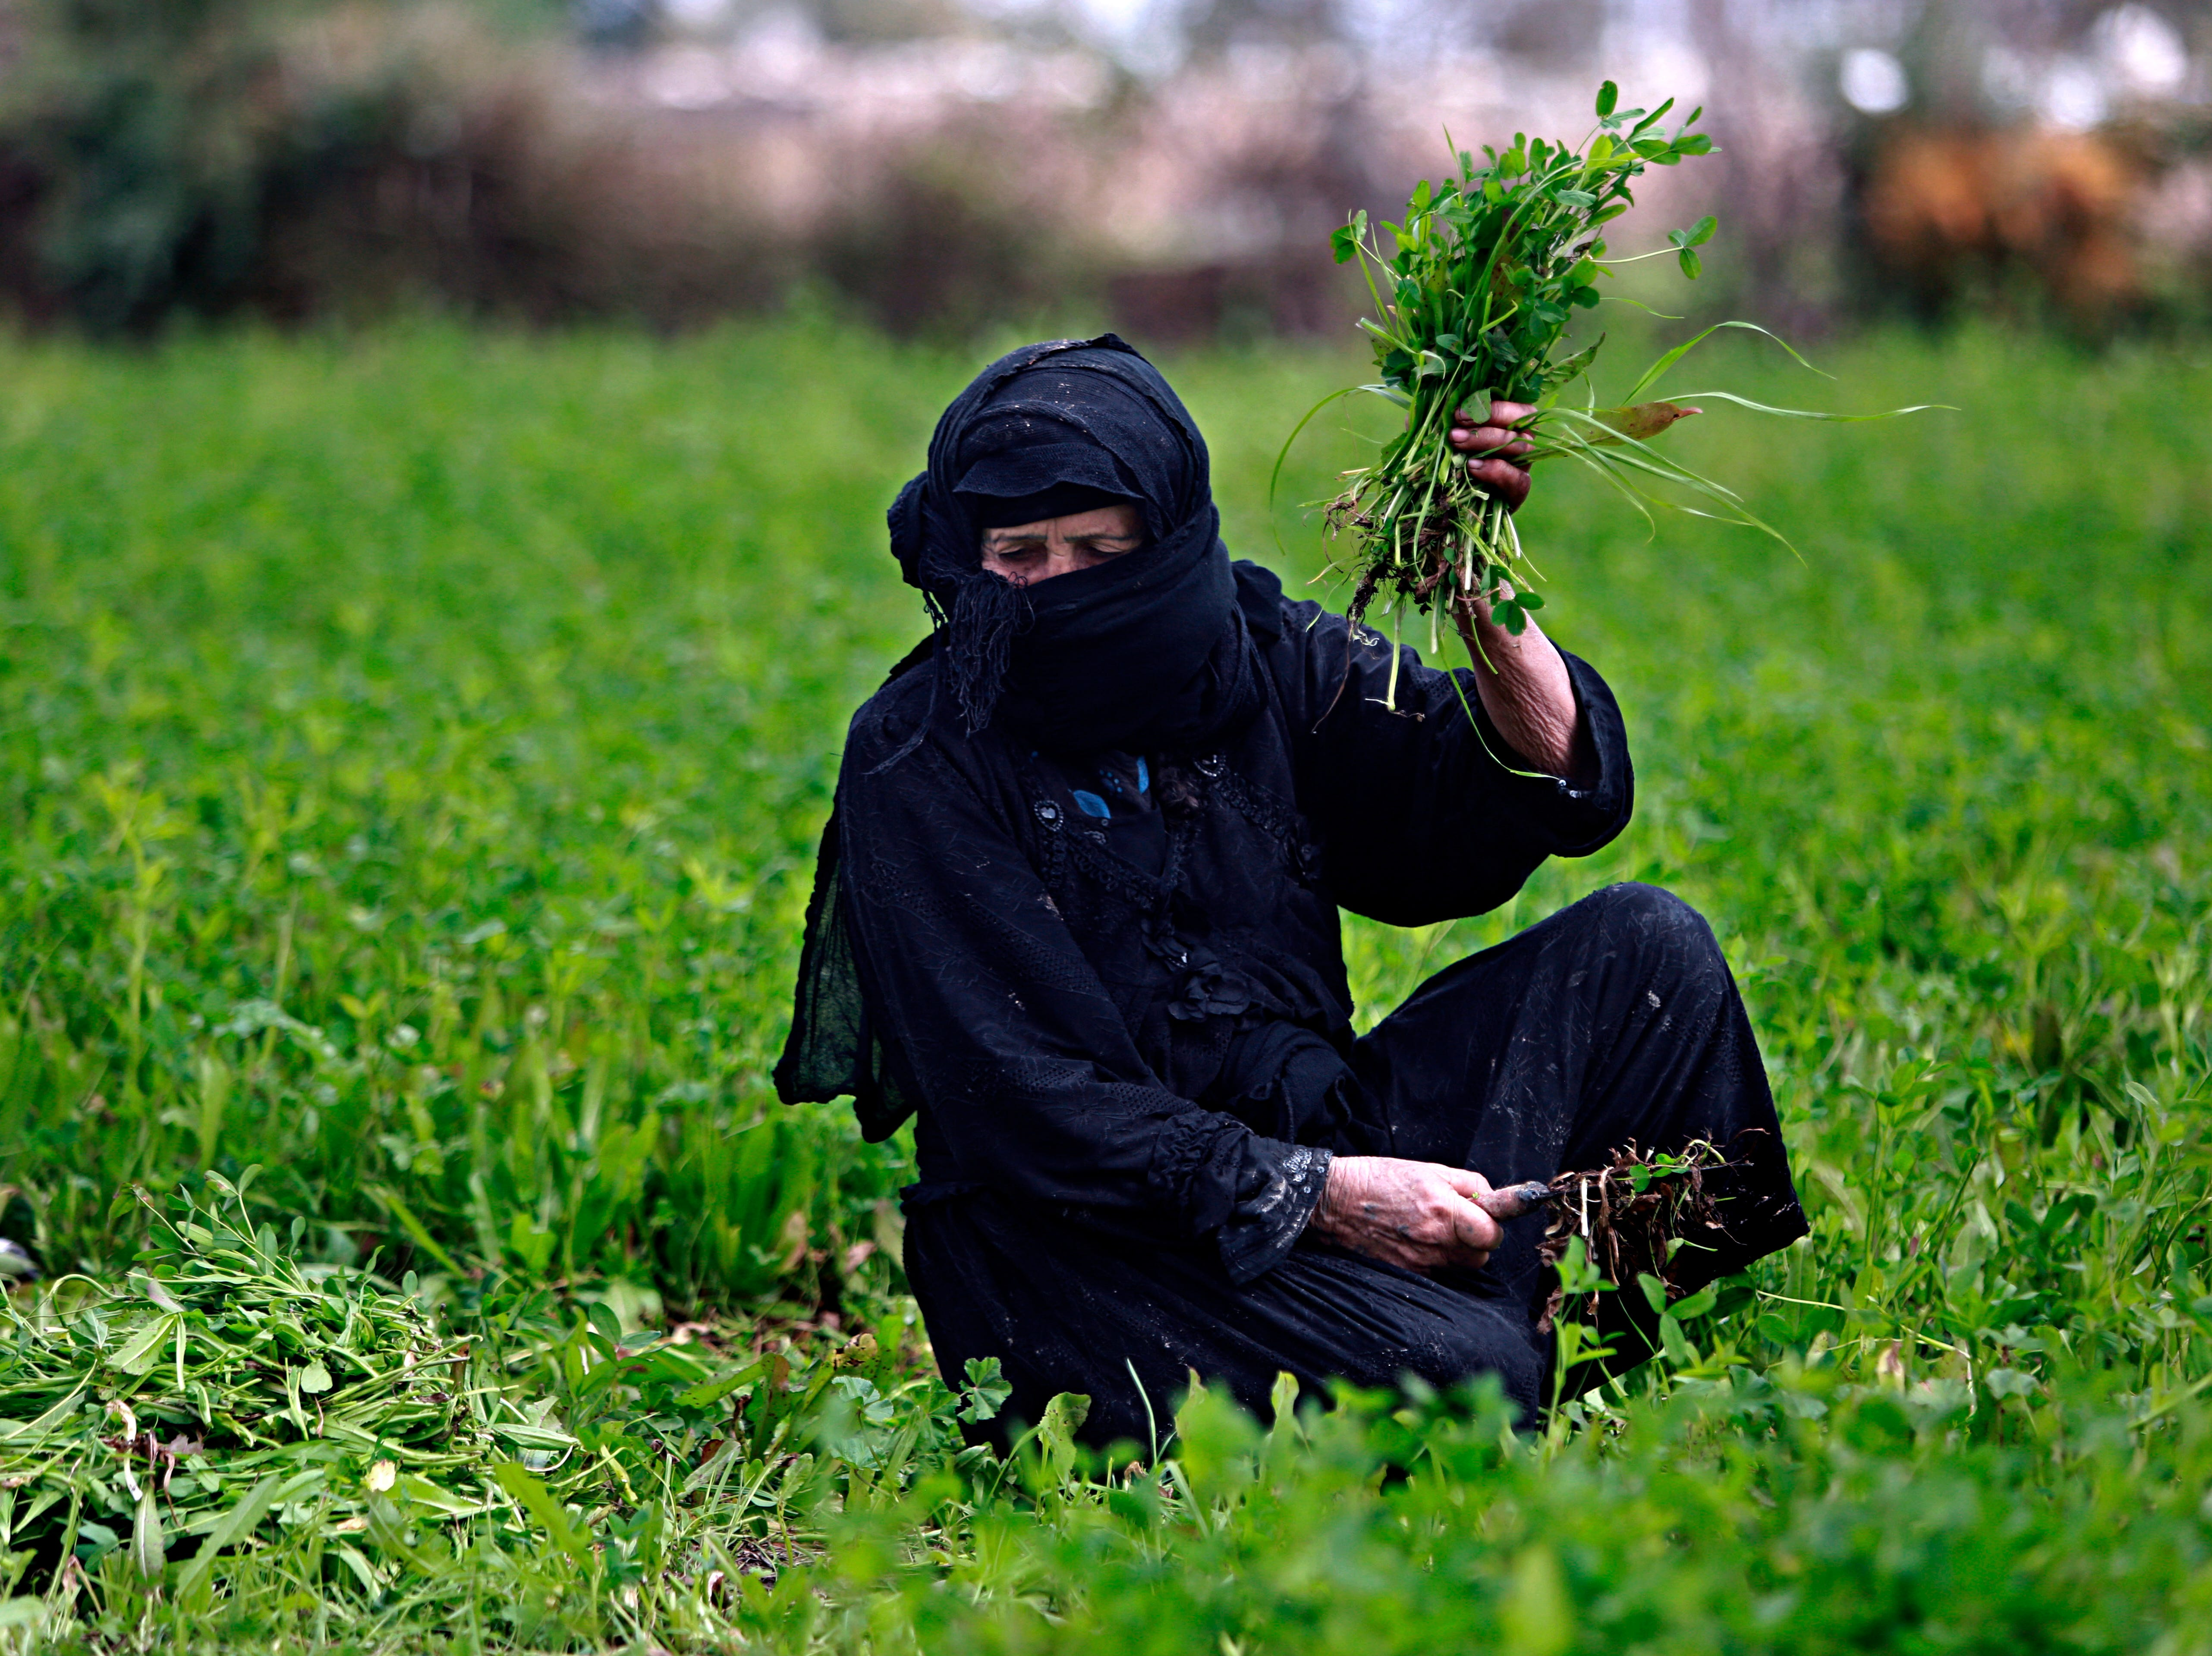 An Iraqi woman works in a vegetable field, as the world celebrates International Women's, on the outskirts of Baghdad, Iraq, Friday, March 8, 2019. (AP Photo/Hadi Mizban)